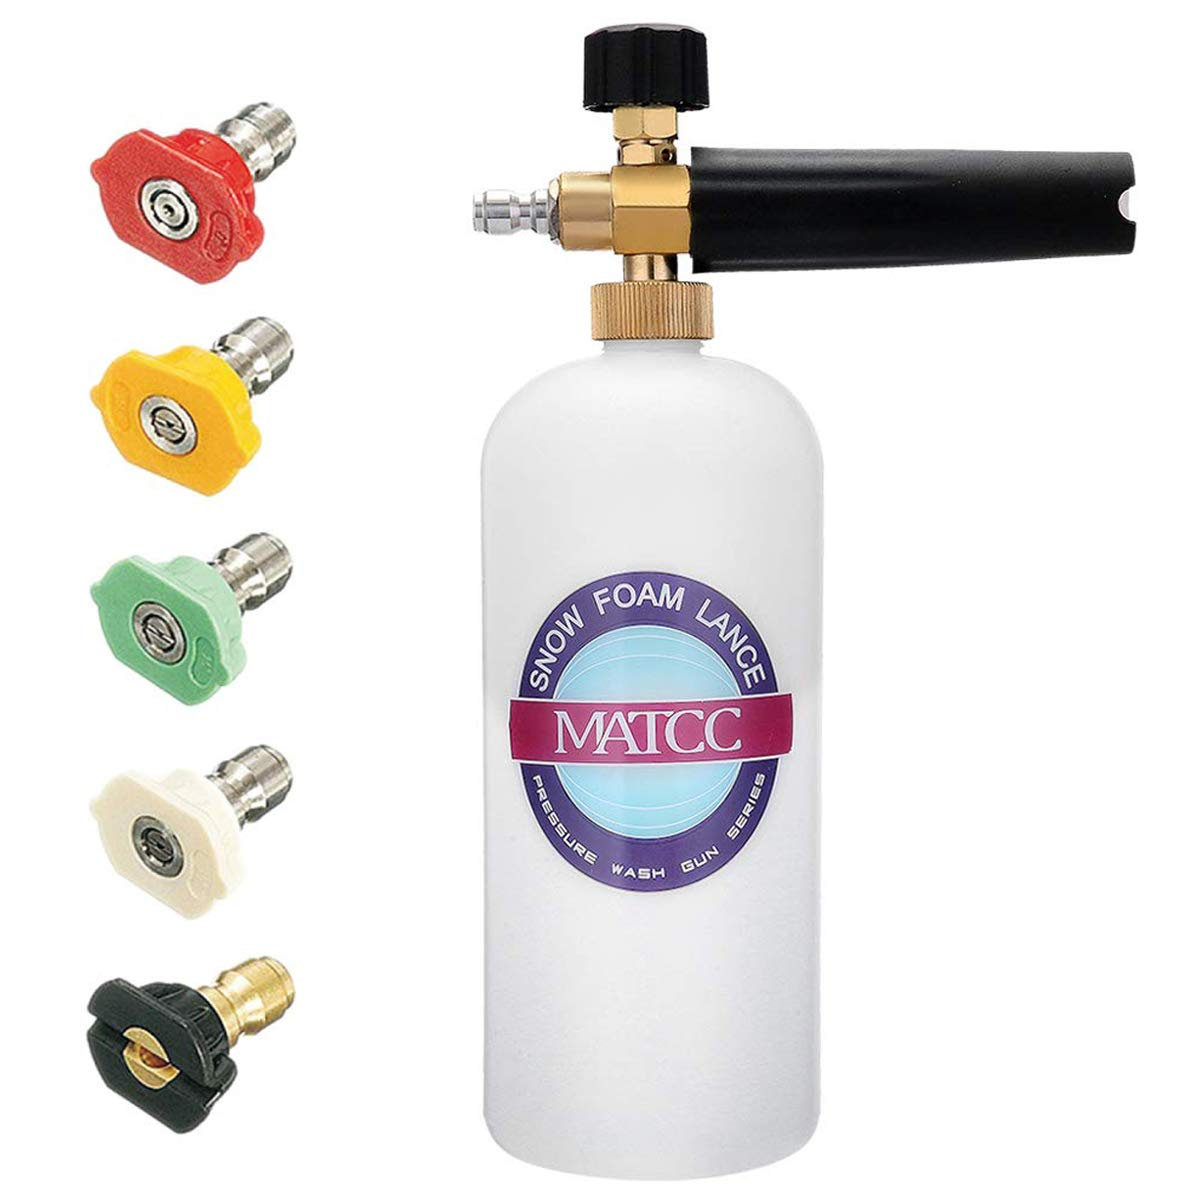 MATCC Foam Cannon Snow Foam Lance Pressure Washer Jet Wash with 1/4'' Quick Connector Foam Blasters 5 Power Washer Nozzle Tips for Cleaning by MATCC